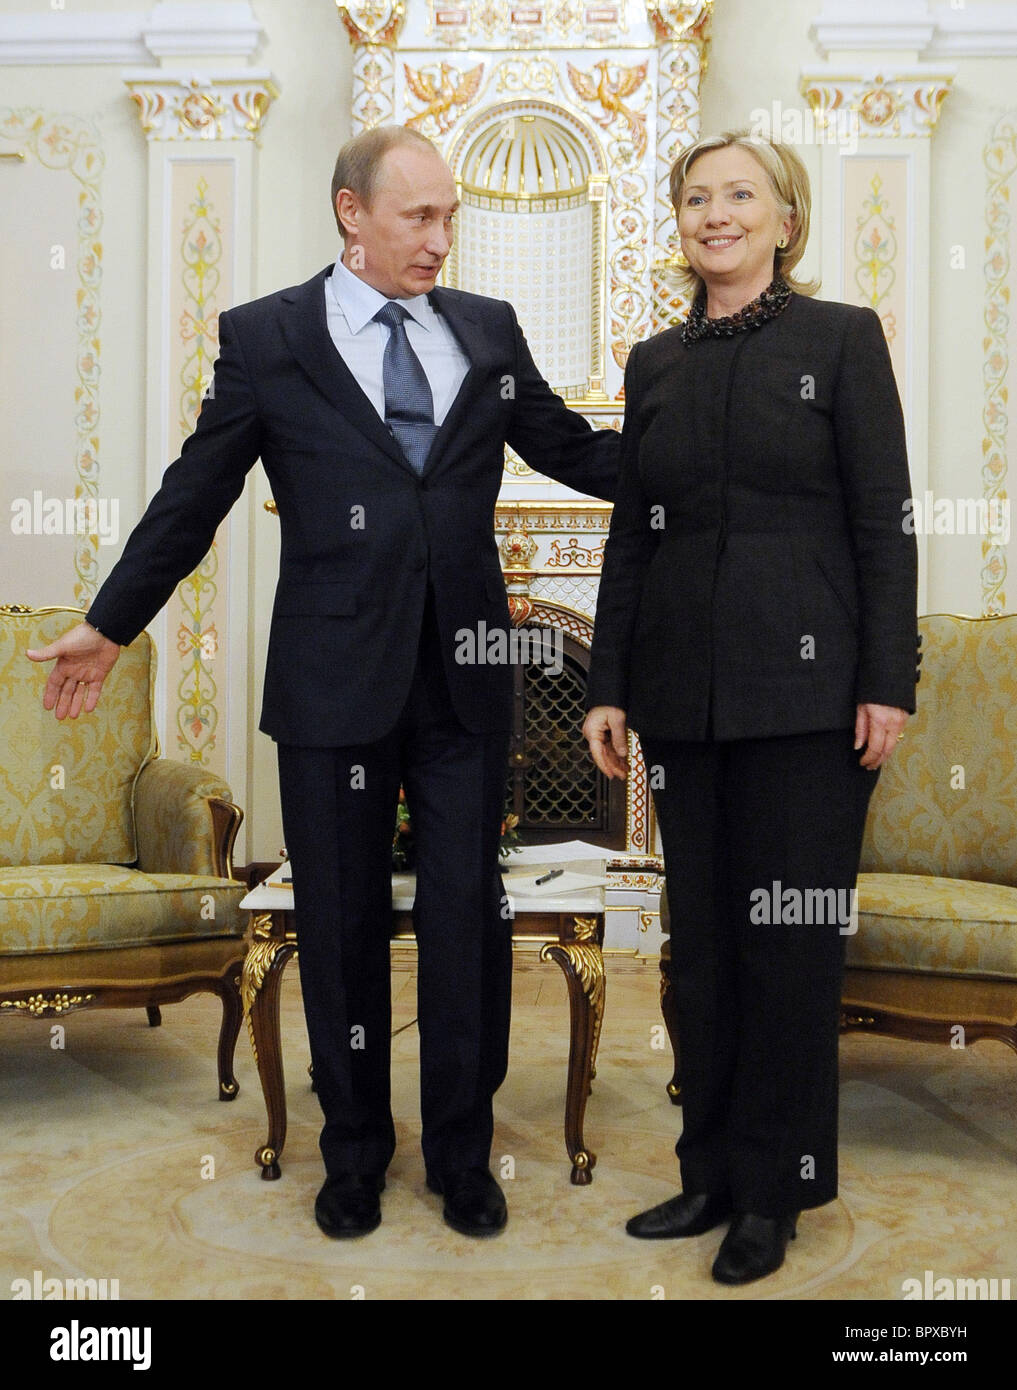 Russian PM, U.S. Secretary of State meet for talks Stock Photo